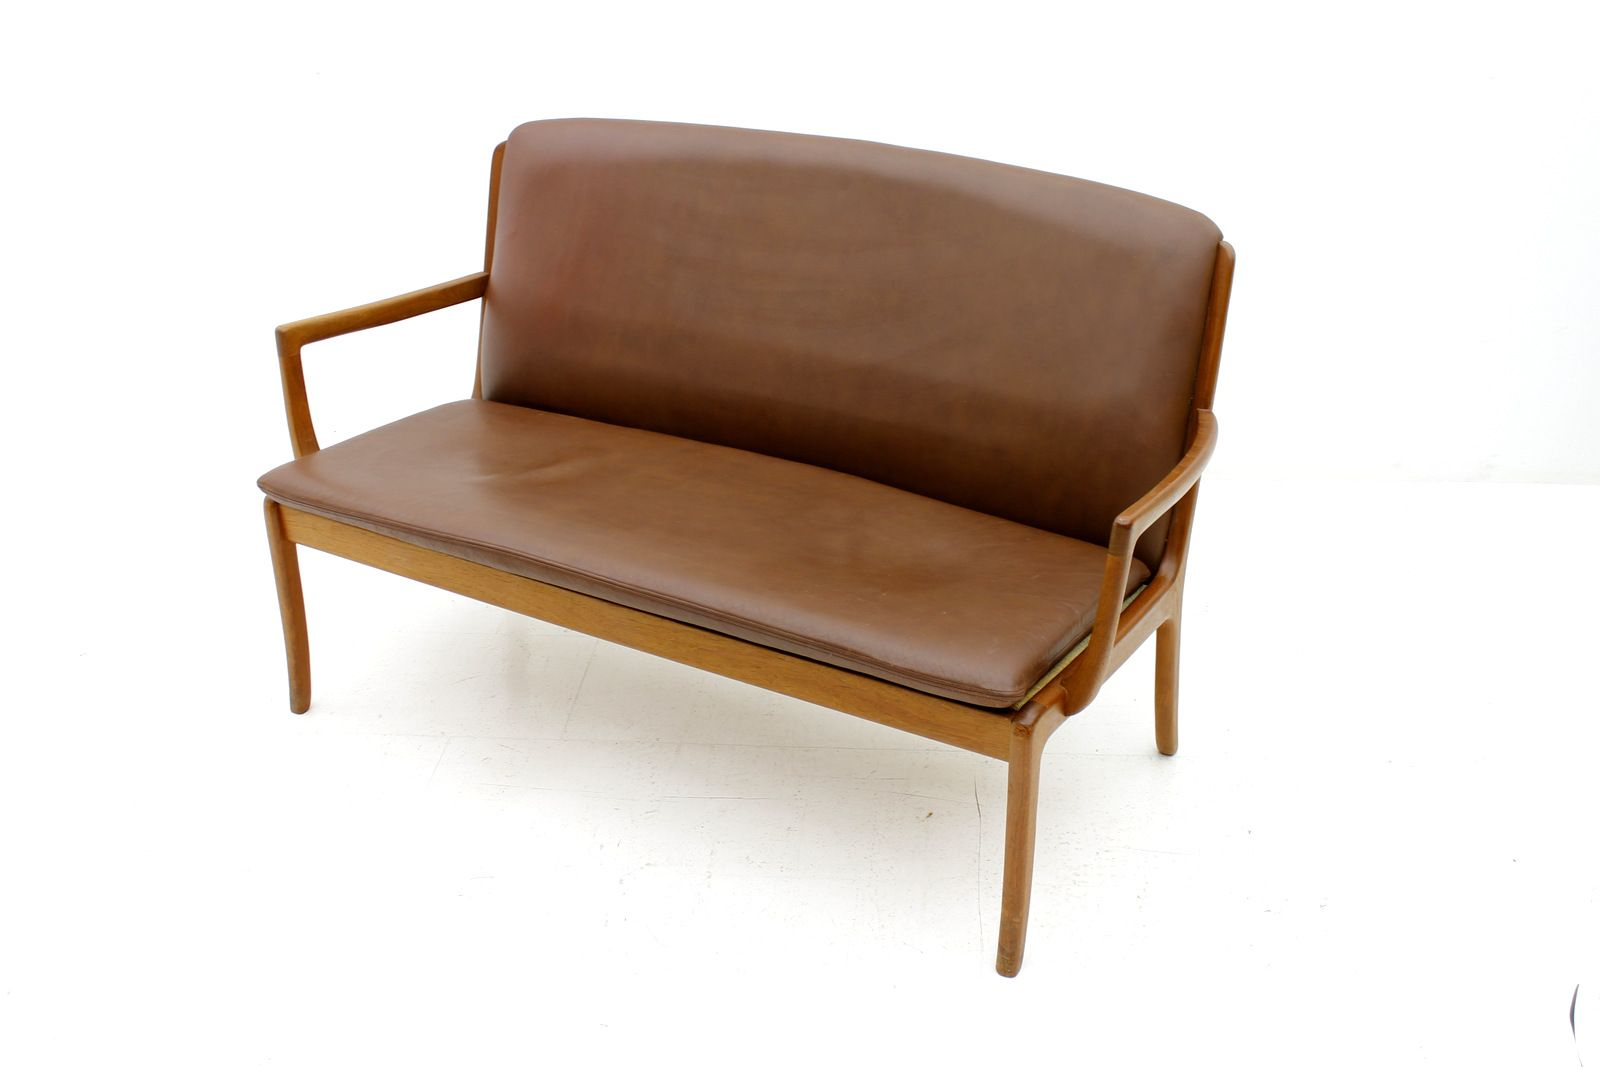 Teak Leather Sofa By Ole Wanscher For Cado For Sale At Pamono